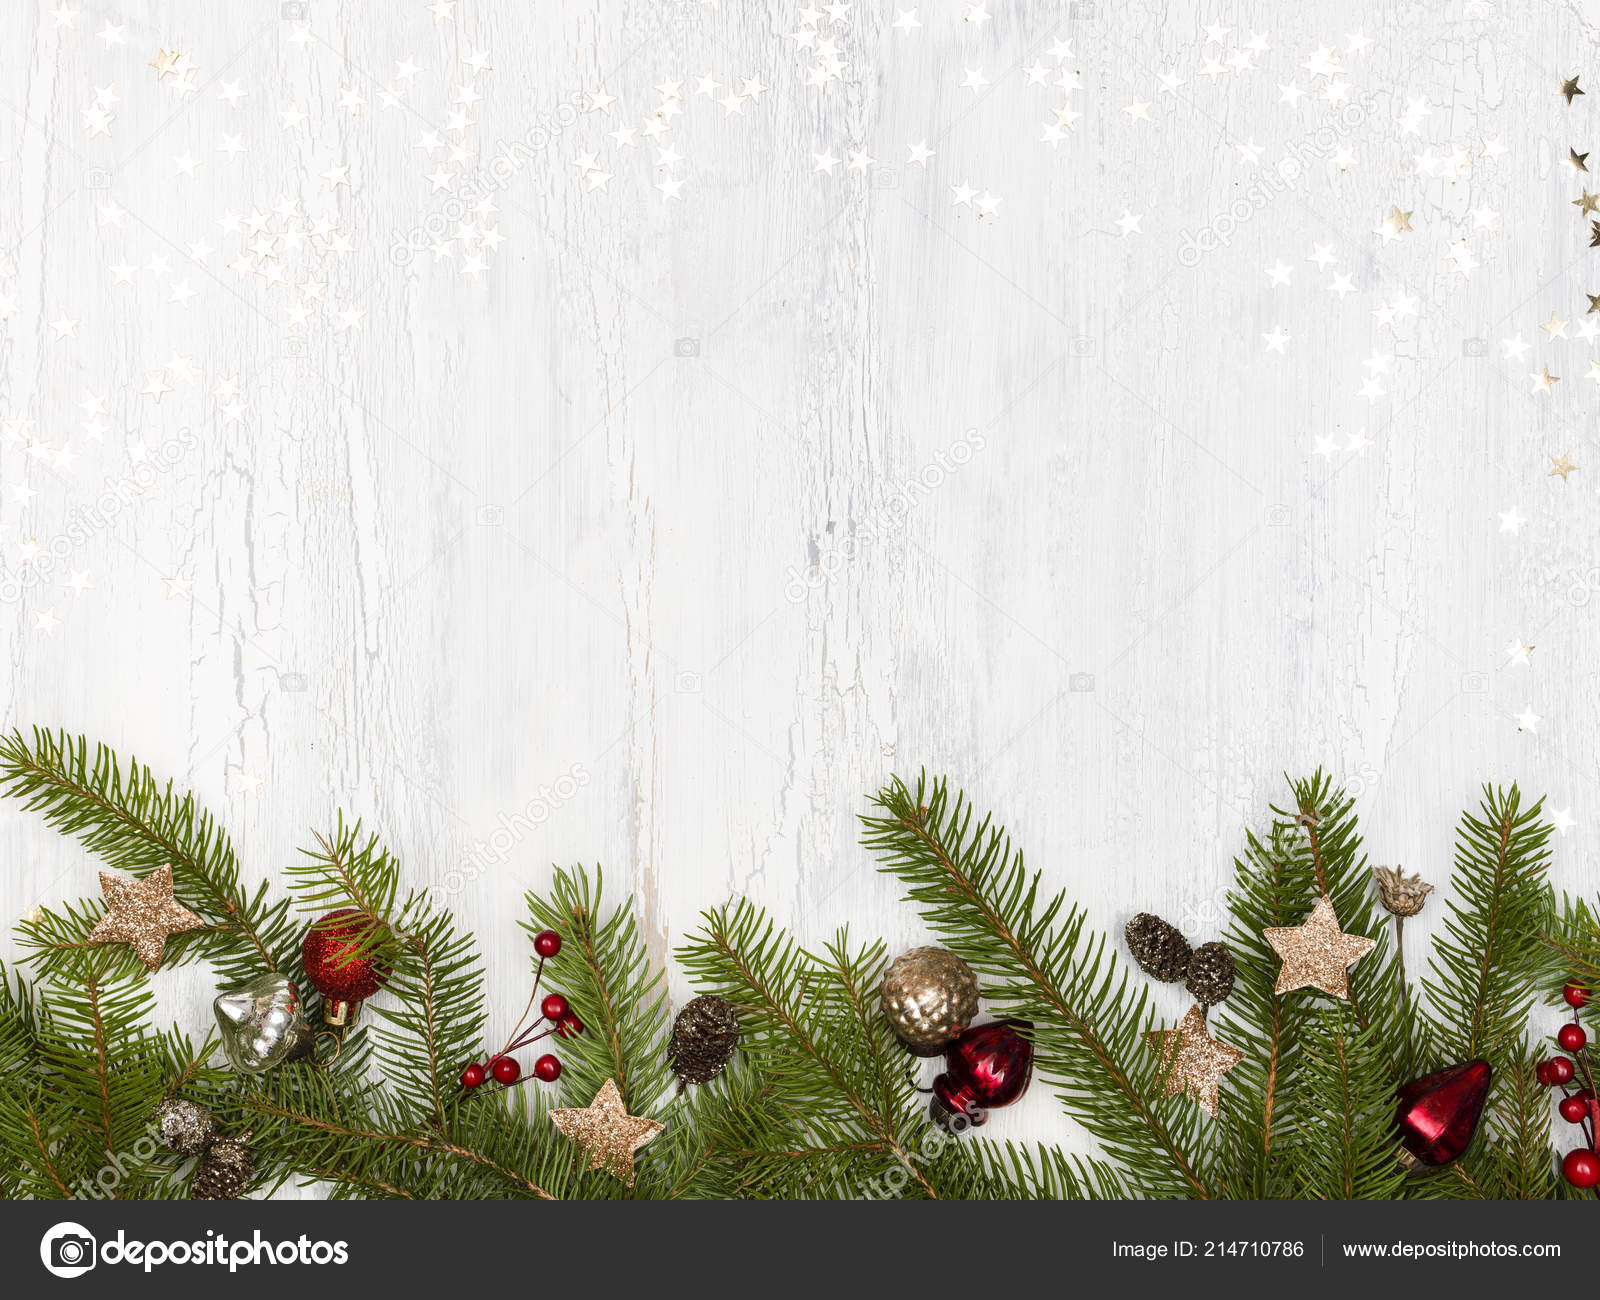 Green Christmas Tree Branches Baubles Pine Cones White Wooden Background Stock Photo Image By C Epiximages 214710786